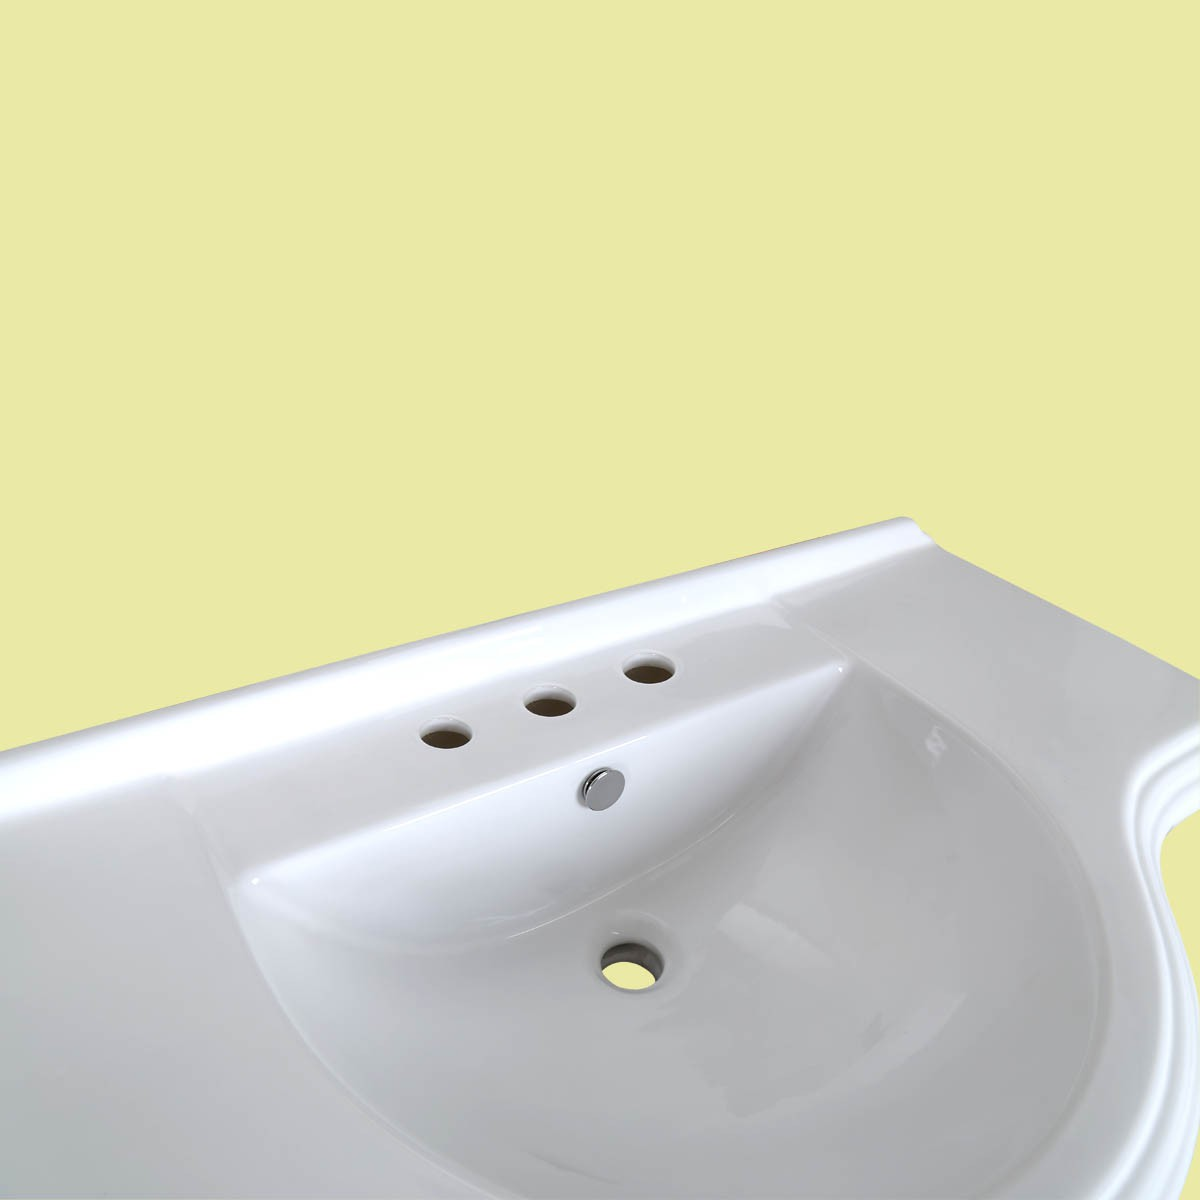 Bathroom Pedestal Sink Vintage Design White China 8in Widespread Faucet Holes Deluxe White Pedestal Sink Vintage Pedestal Sinks ceramic porcelain basin remodel